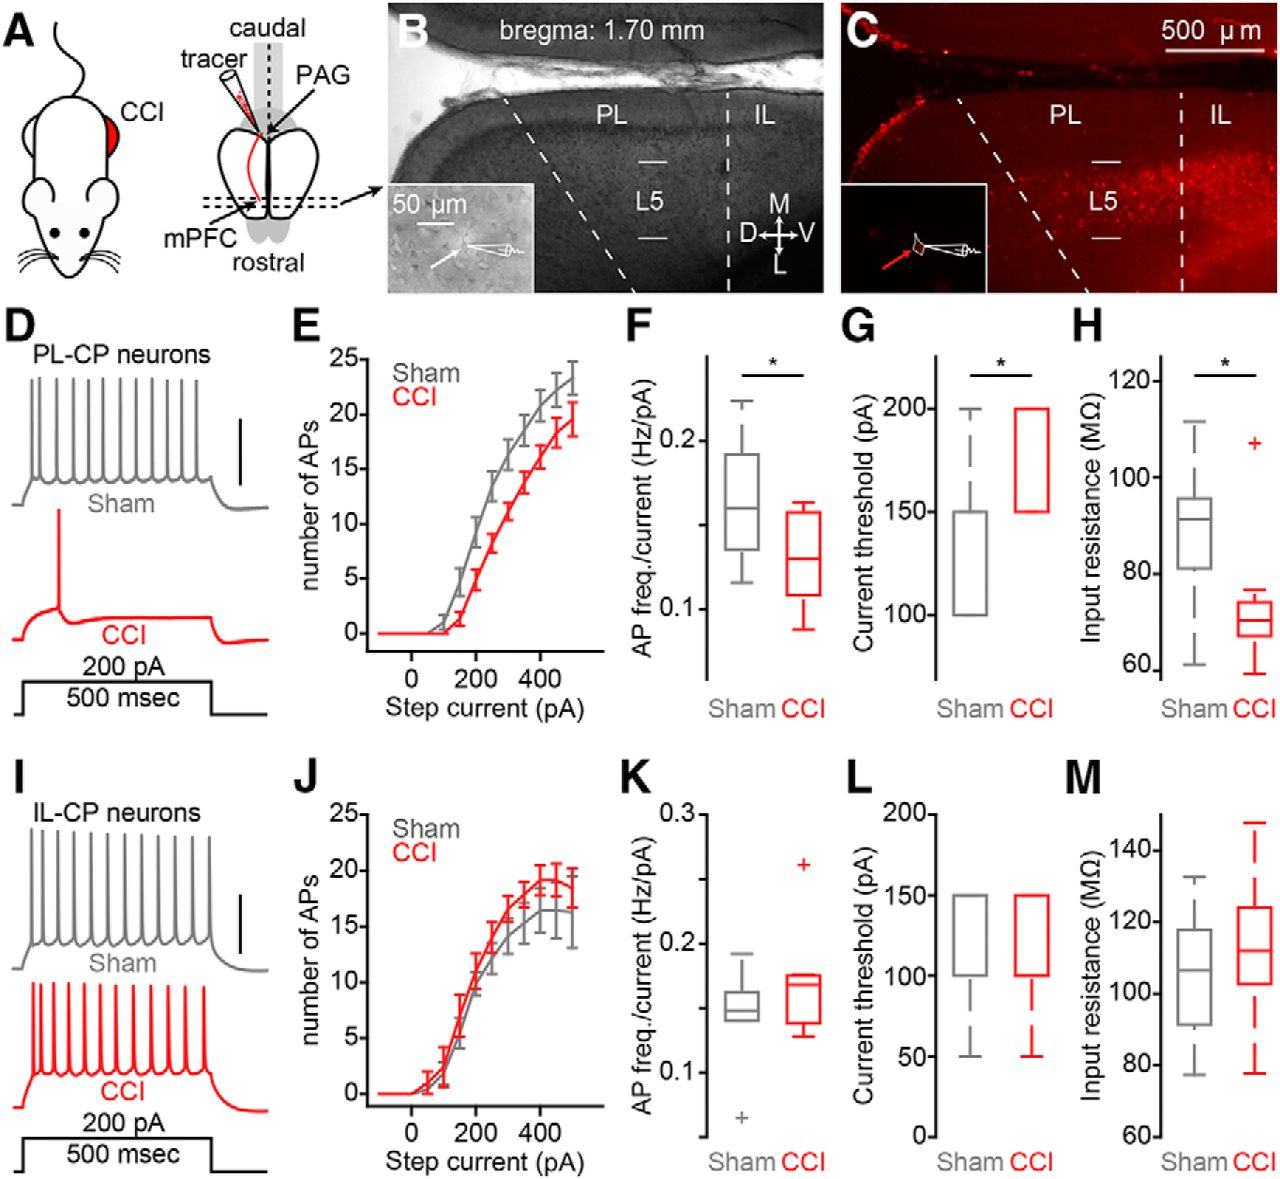 Altered Excitability And Local Connectivity Of Mpfc Pag Neurons In A Keywords Like Schematic Symbol For Heater Panel Other People Download Figure